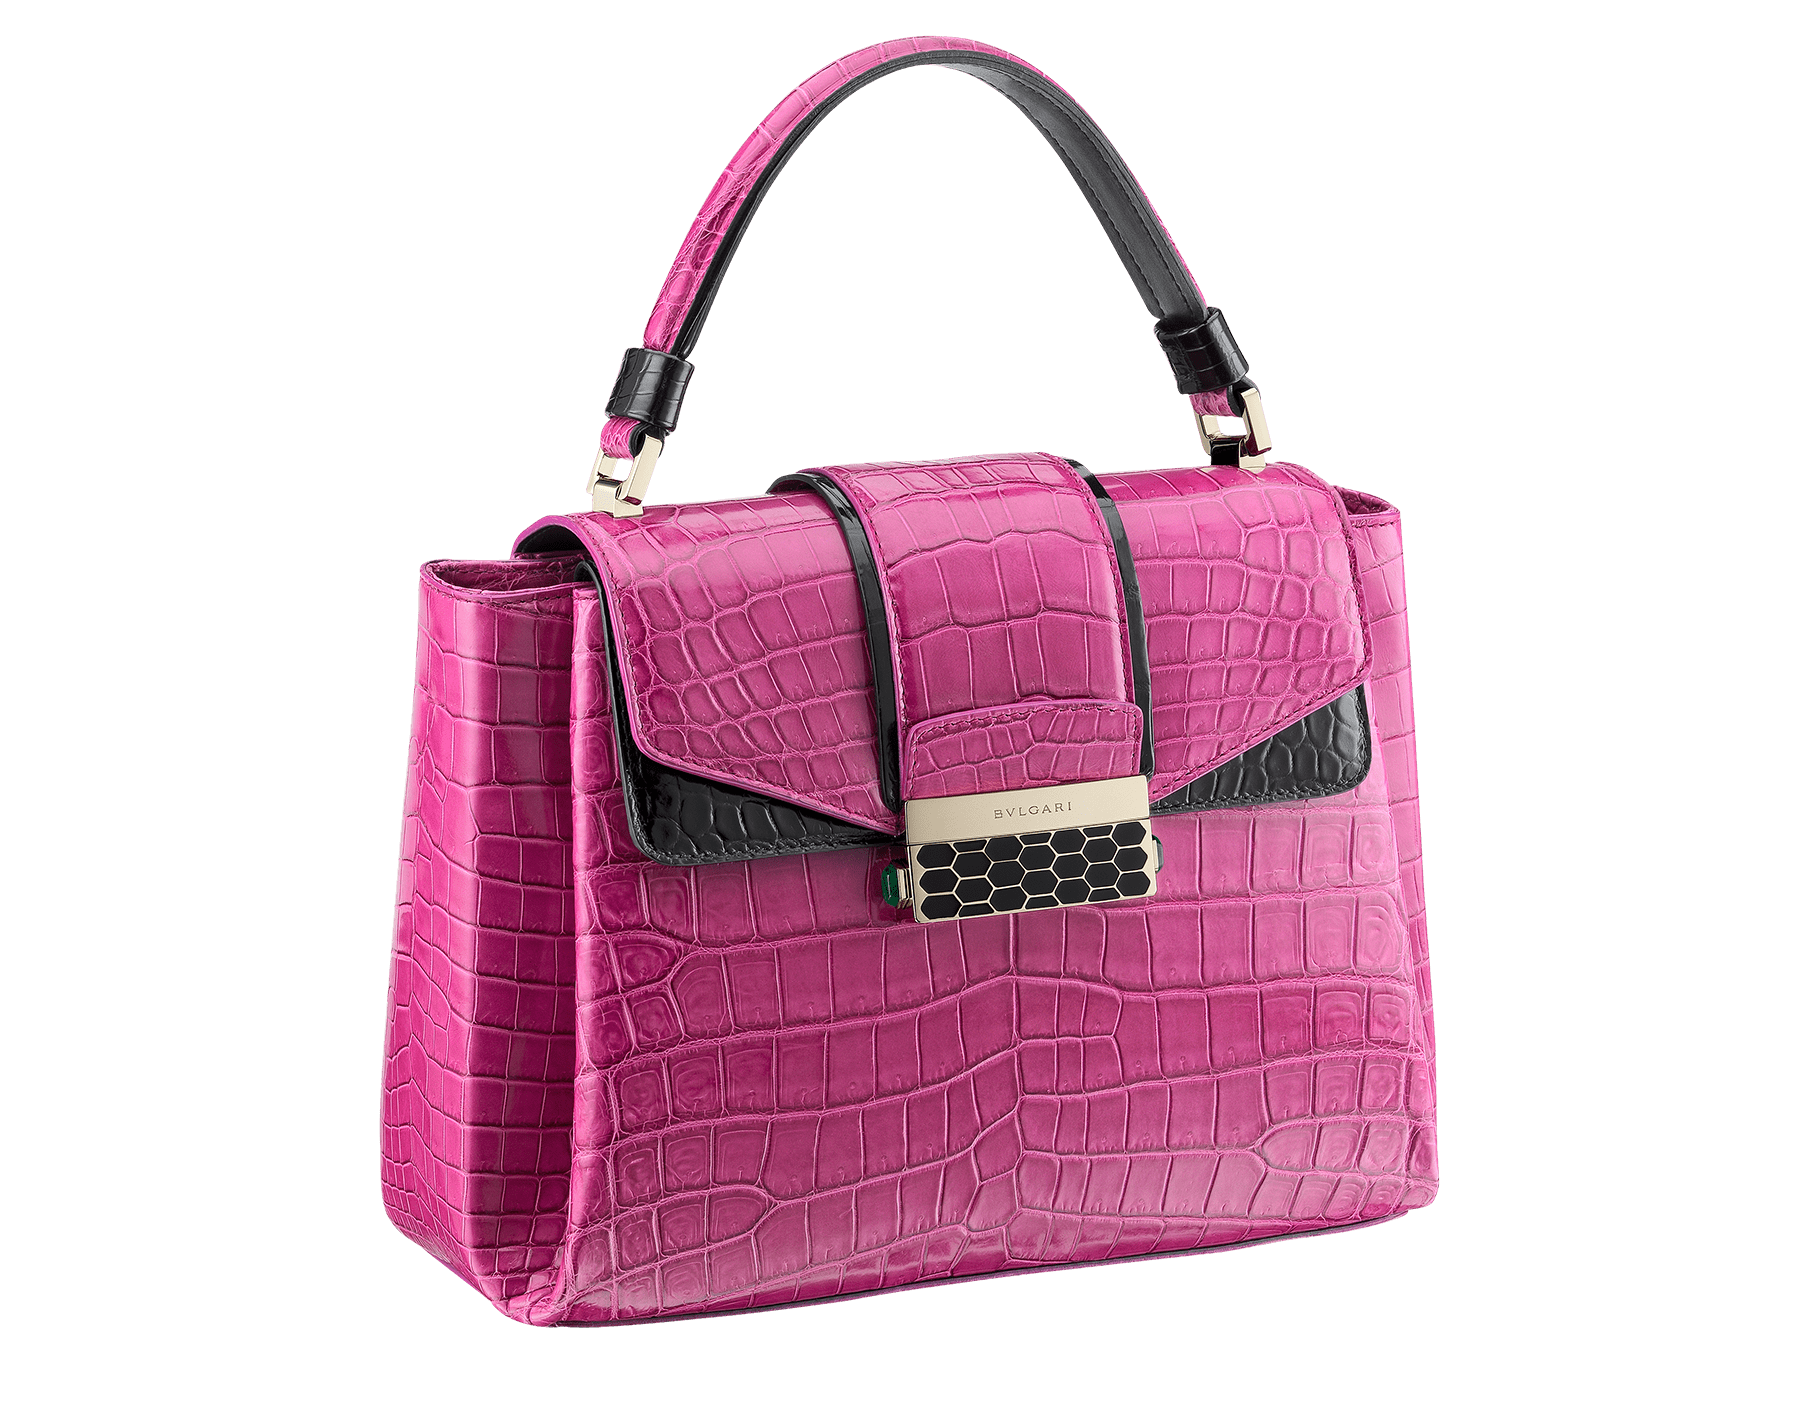 Top handle bag Serpenti Viper in raspberry agate and black shiny crocodile skin. Brass light gold plated hardware and snap closure in black shiny enamel with iconic Scaglie design and lateral push buttons in green malachite stones. One front compartment with internal flap cover, one zipped pocket and one open pocket in the central compartment, one back open compartment. Internal metal tag featuring the Bulgari logo. Adjustable and removable shoulder strap Small size. 27 x 20 x 11 cm. - 10.6 x 7.8 x 4.3 281722 image 2